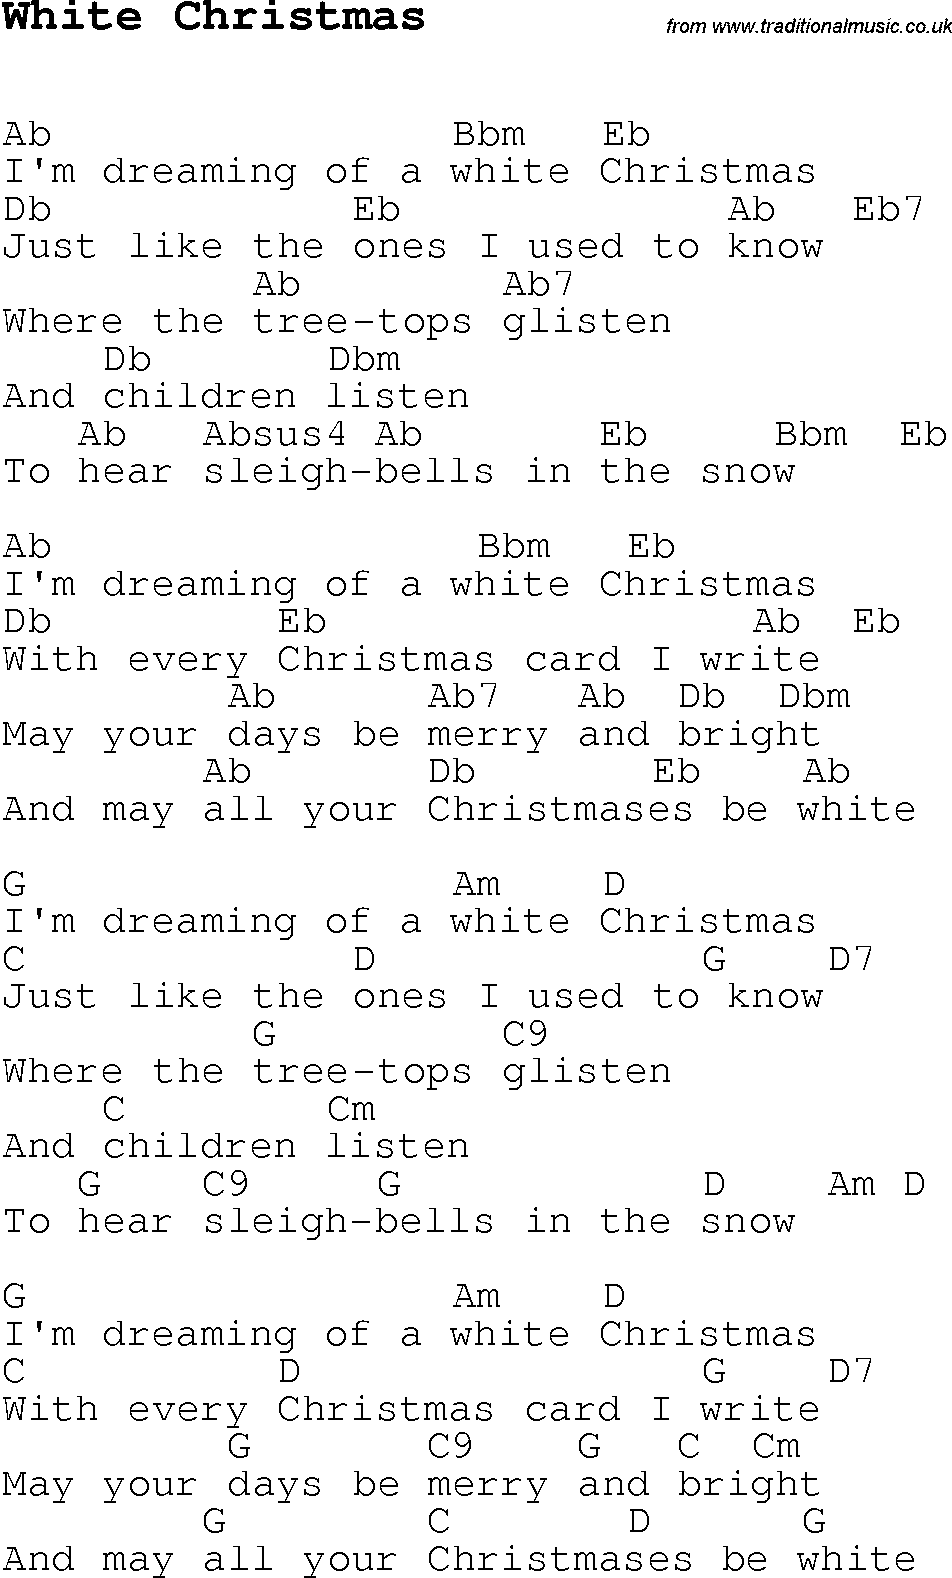 Christmas carolsong lyrics with chords for white christmas christmas songs and carols lyrics with chords for guitar banjo for white christmas hexwebz Choice Image